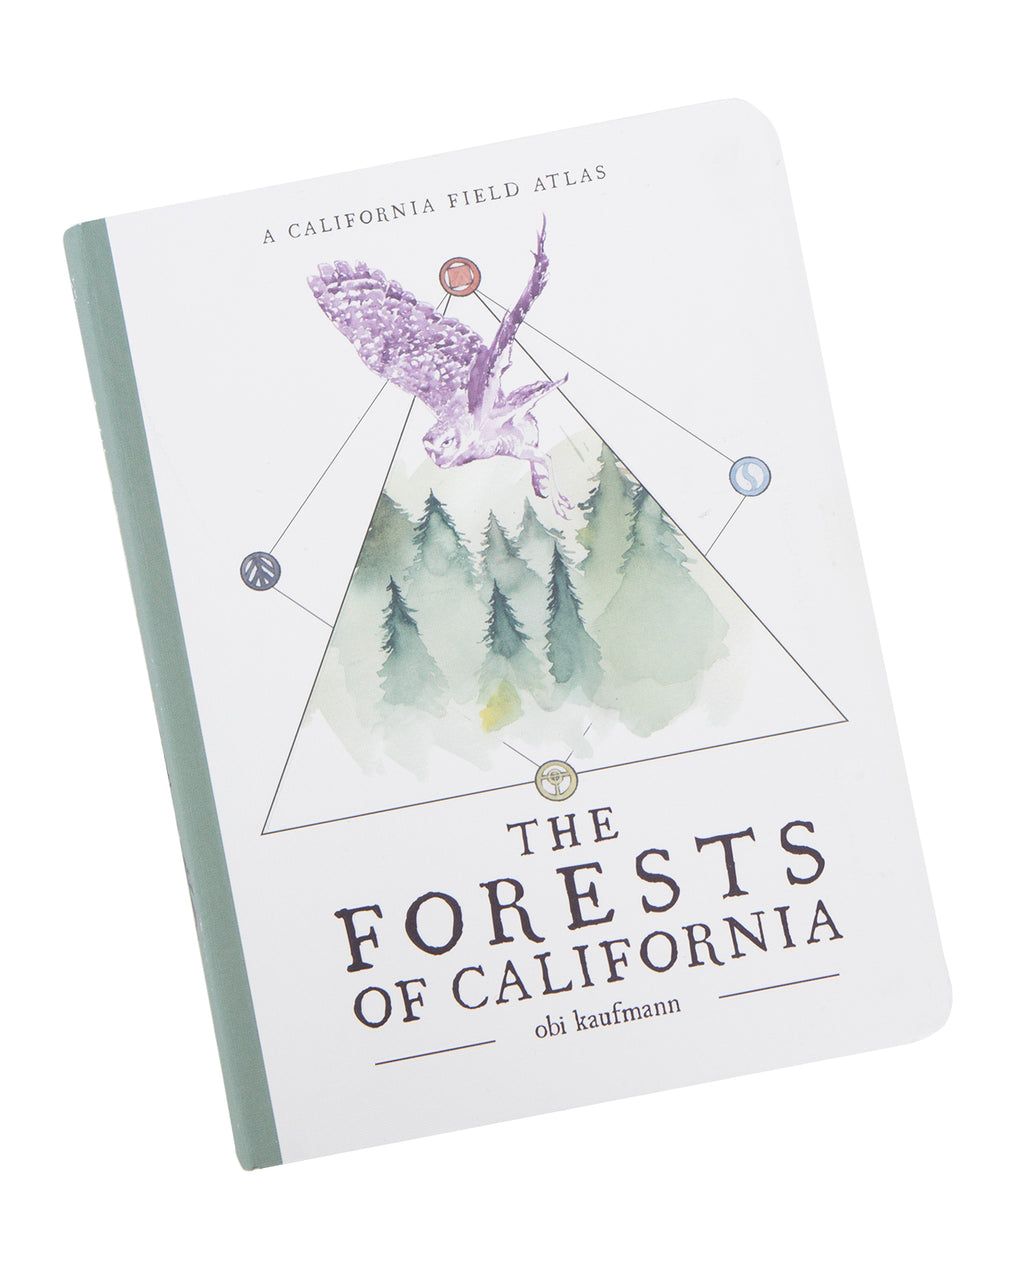 The Forest Of California, Obi Kaufmann